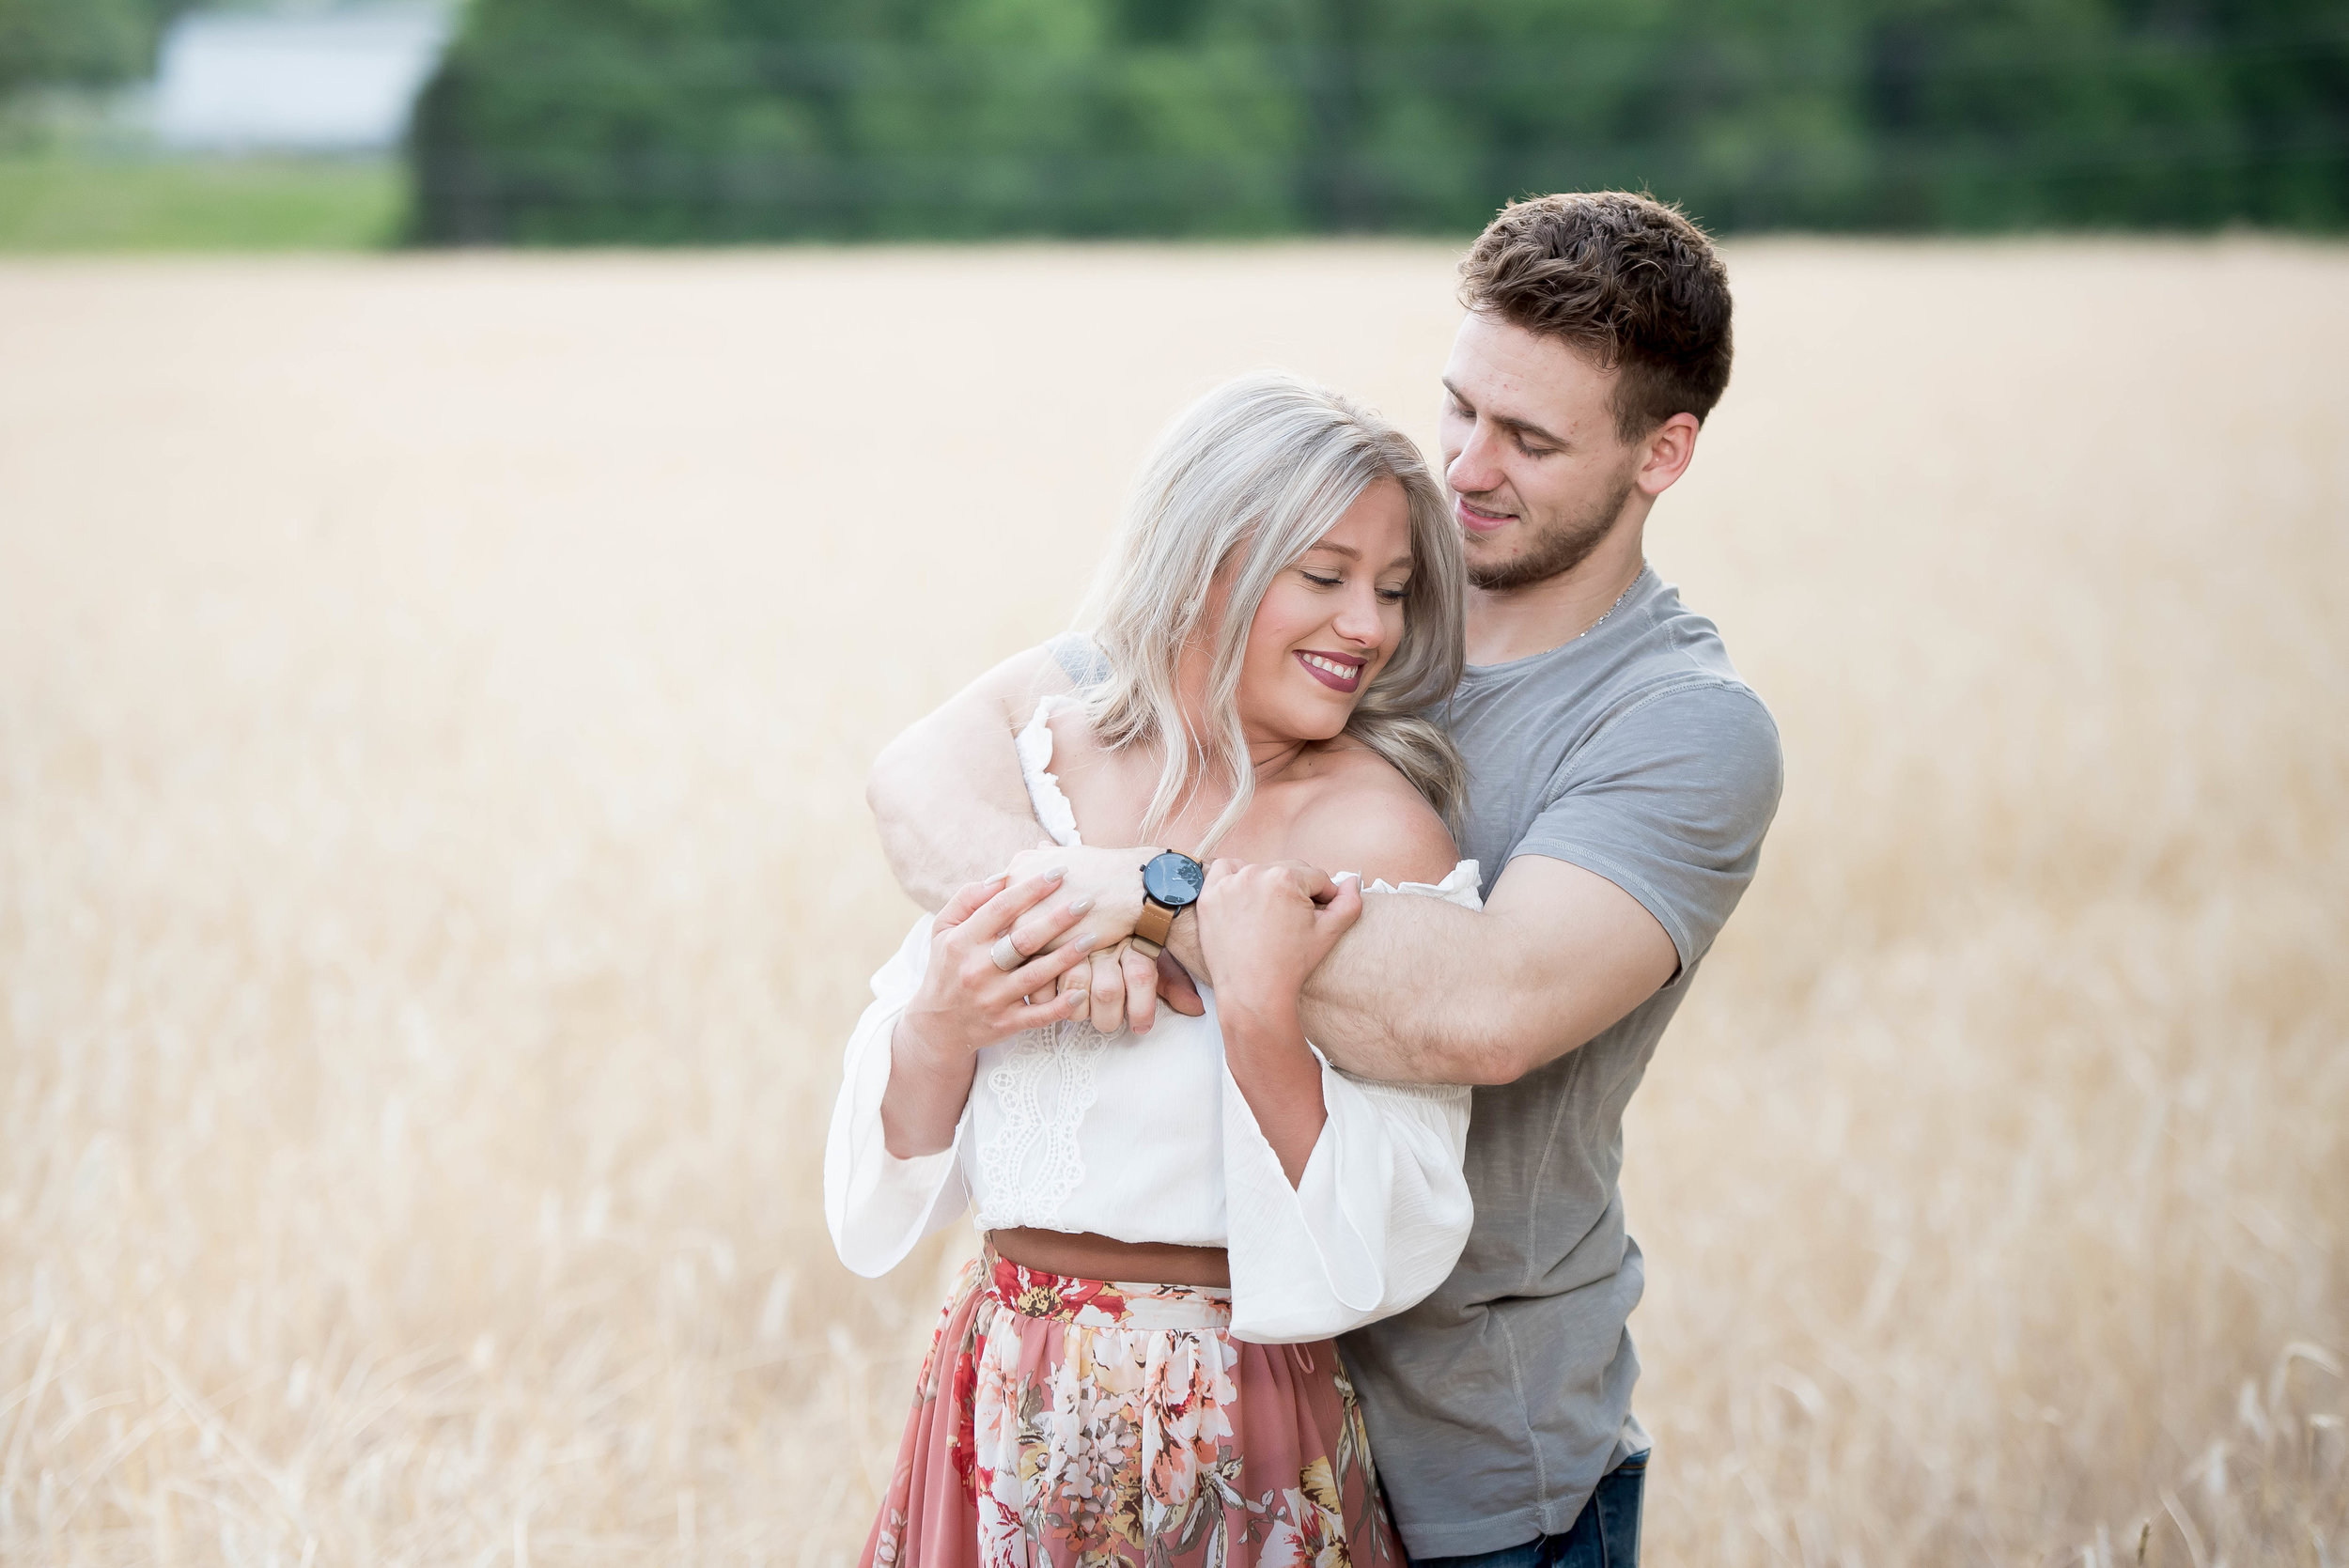 Couple Session - Fitness Couples - Tall Grass Field - Engagement Portrait Ideas - Engagement Session Ideas - Couple Session Ideas - Spring Picture Ideas-16.jpg